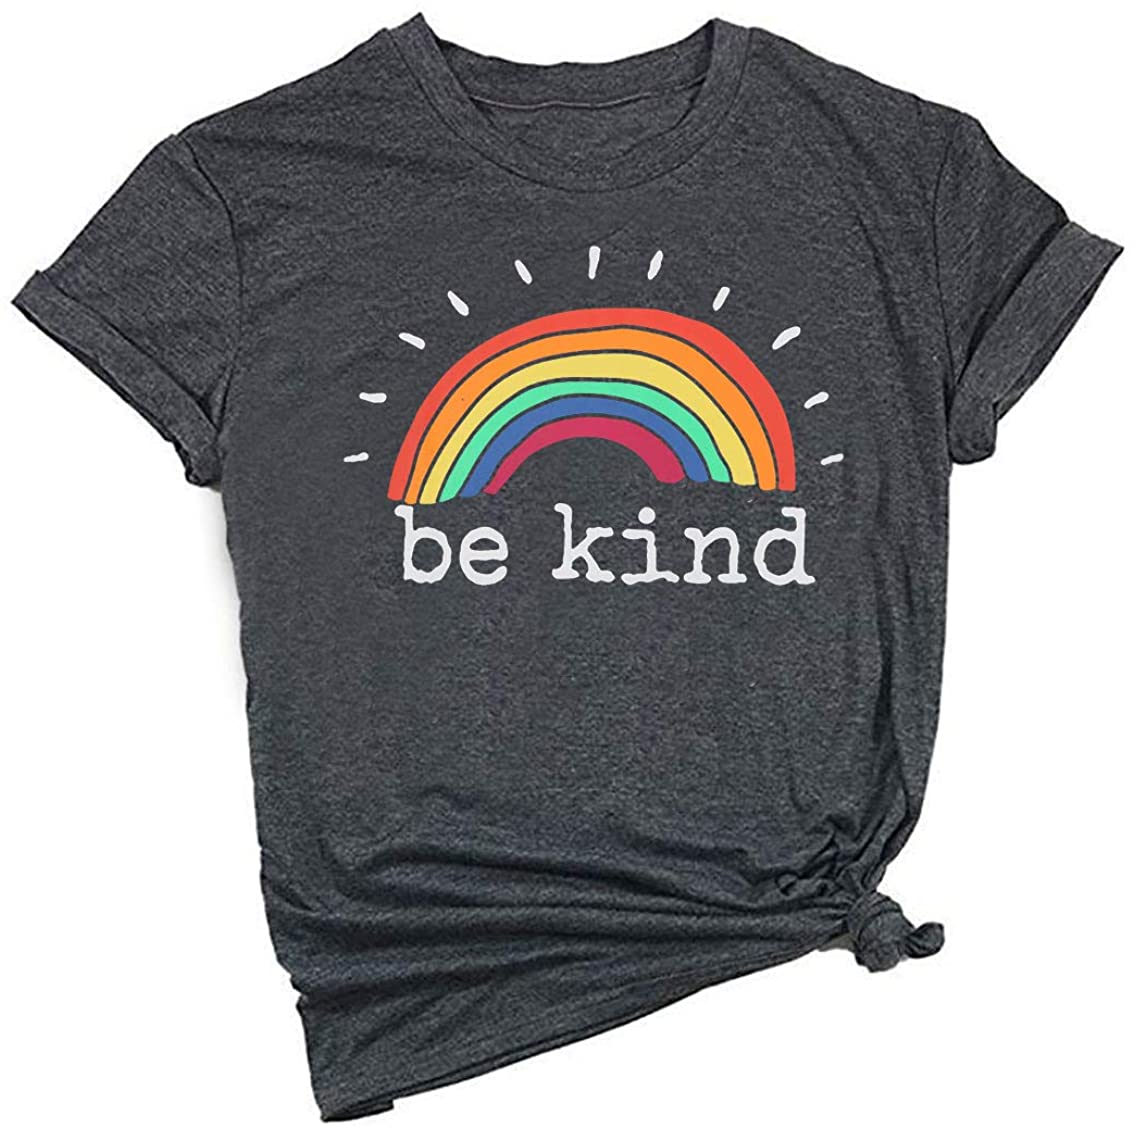 EGELEXY Be Kind T Shirt Women Rainbow Print Graphic Tees Tops Funny Inspirational Saying Casual Short Sleeve Tops Shirts